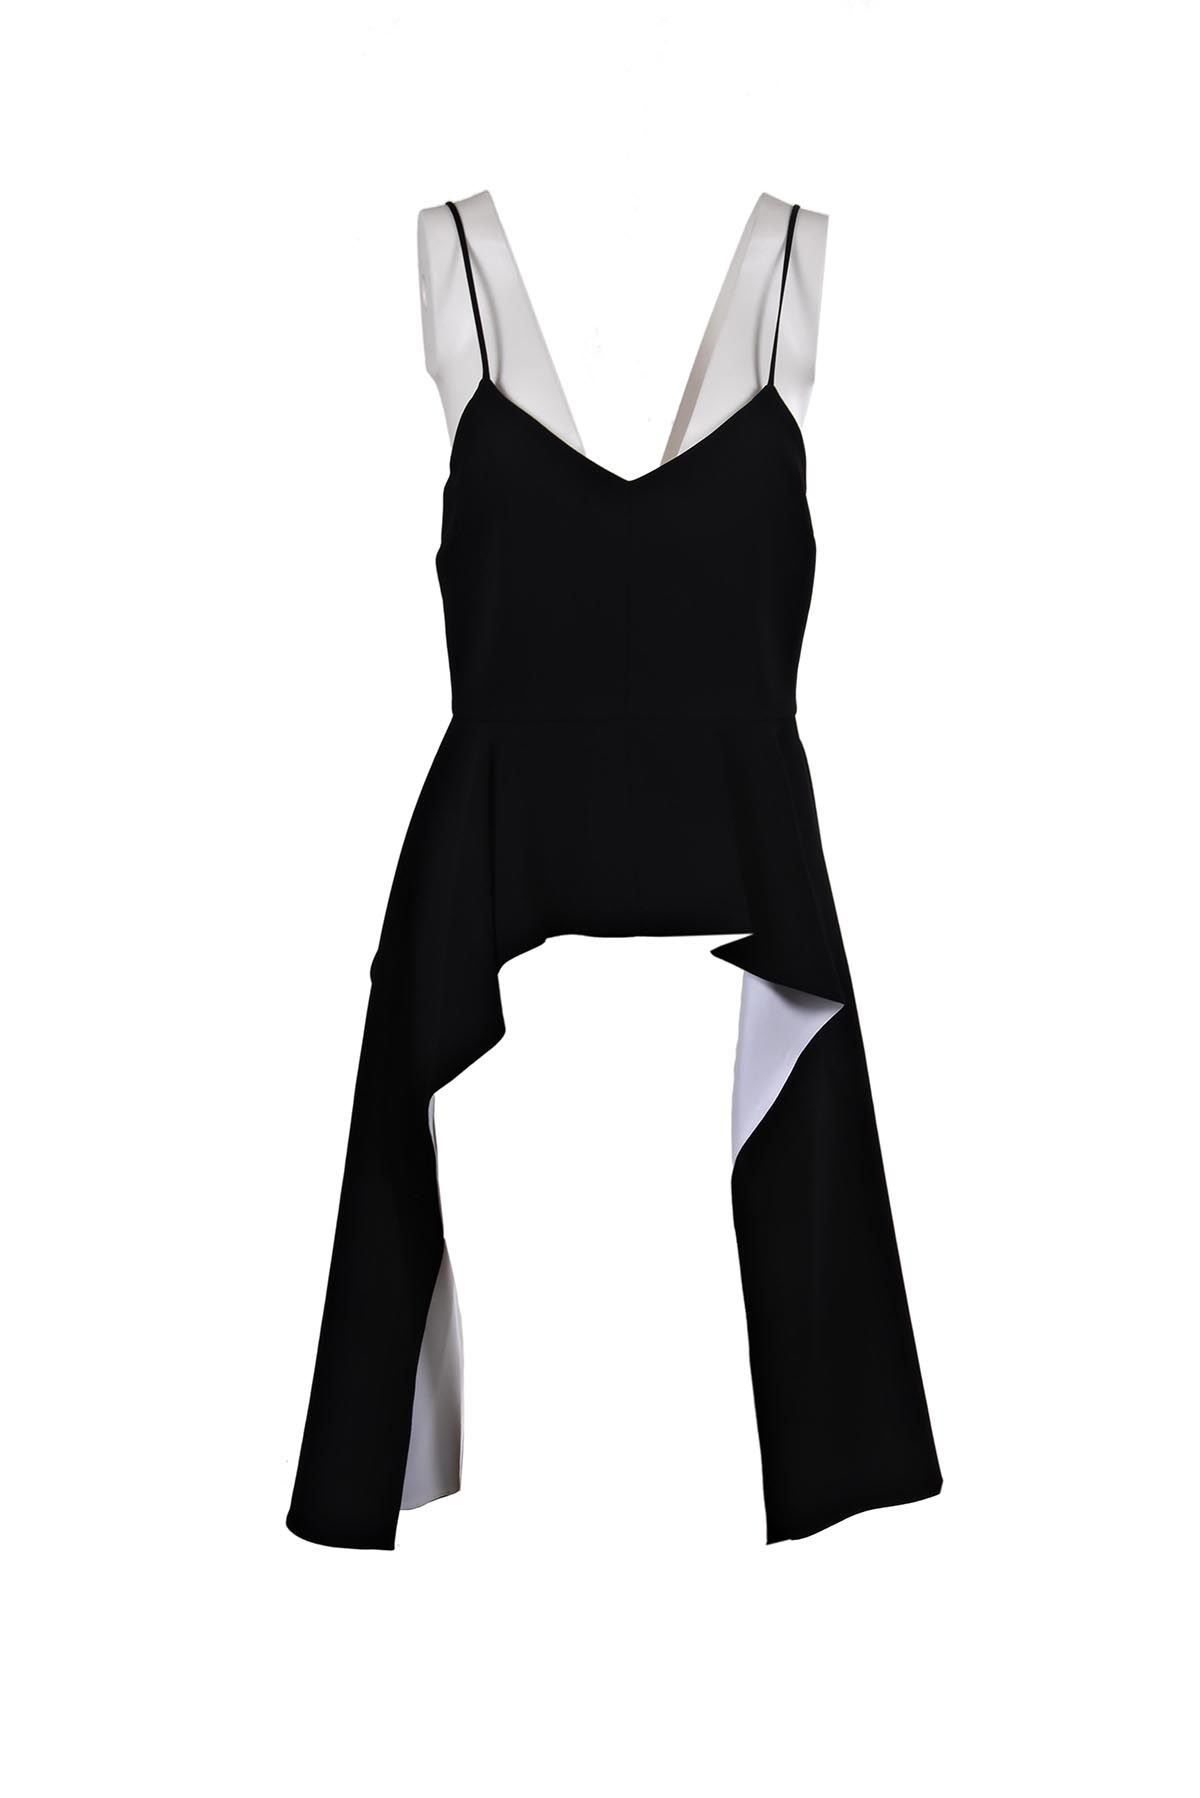 Givenchy Draped Peplum Top